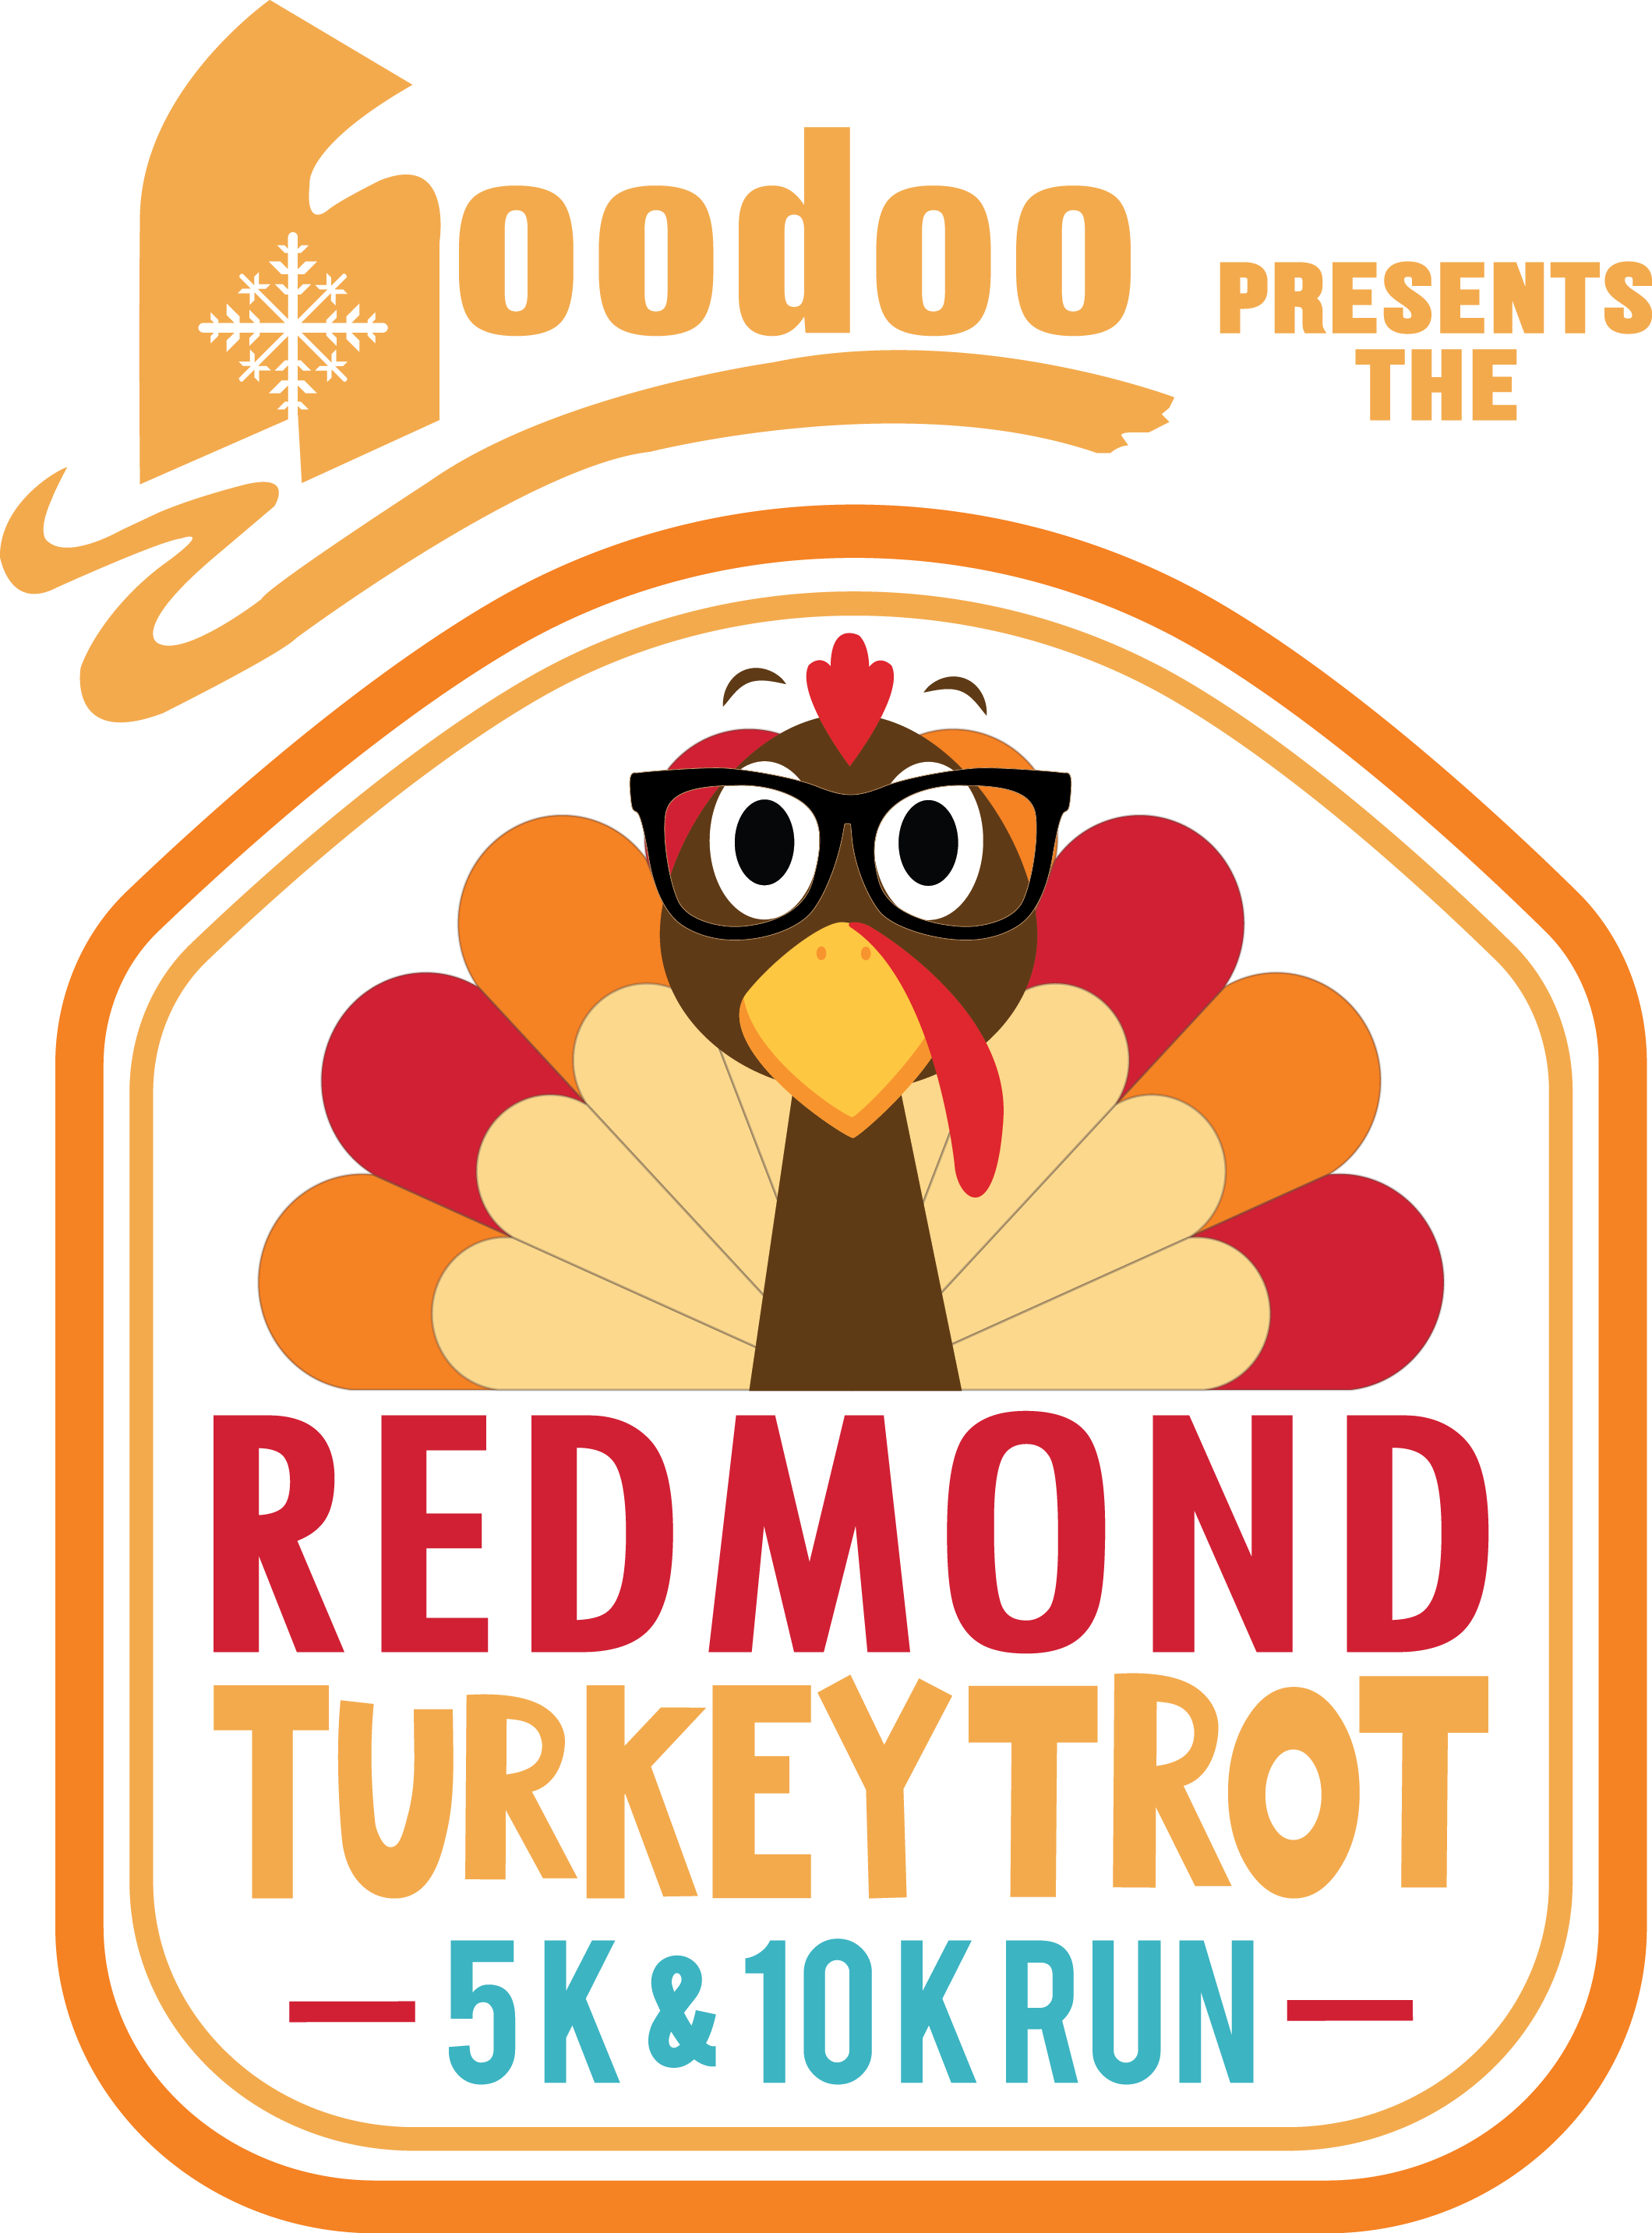 Redmond Turkey Trot 5K & 10K presented by Hoodoo @ Deschutes County Fairgrounds | Redmond | Oregon | United States